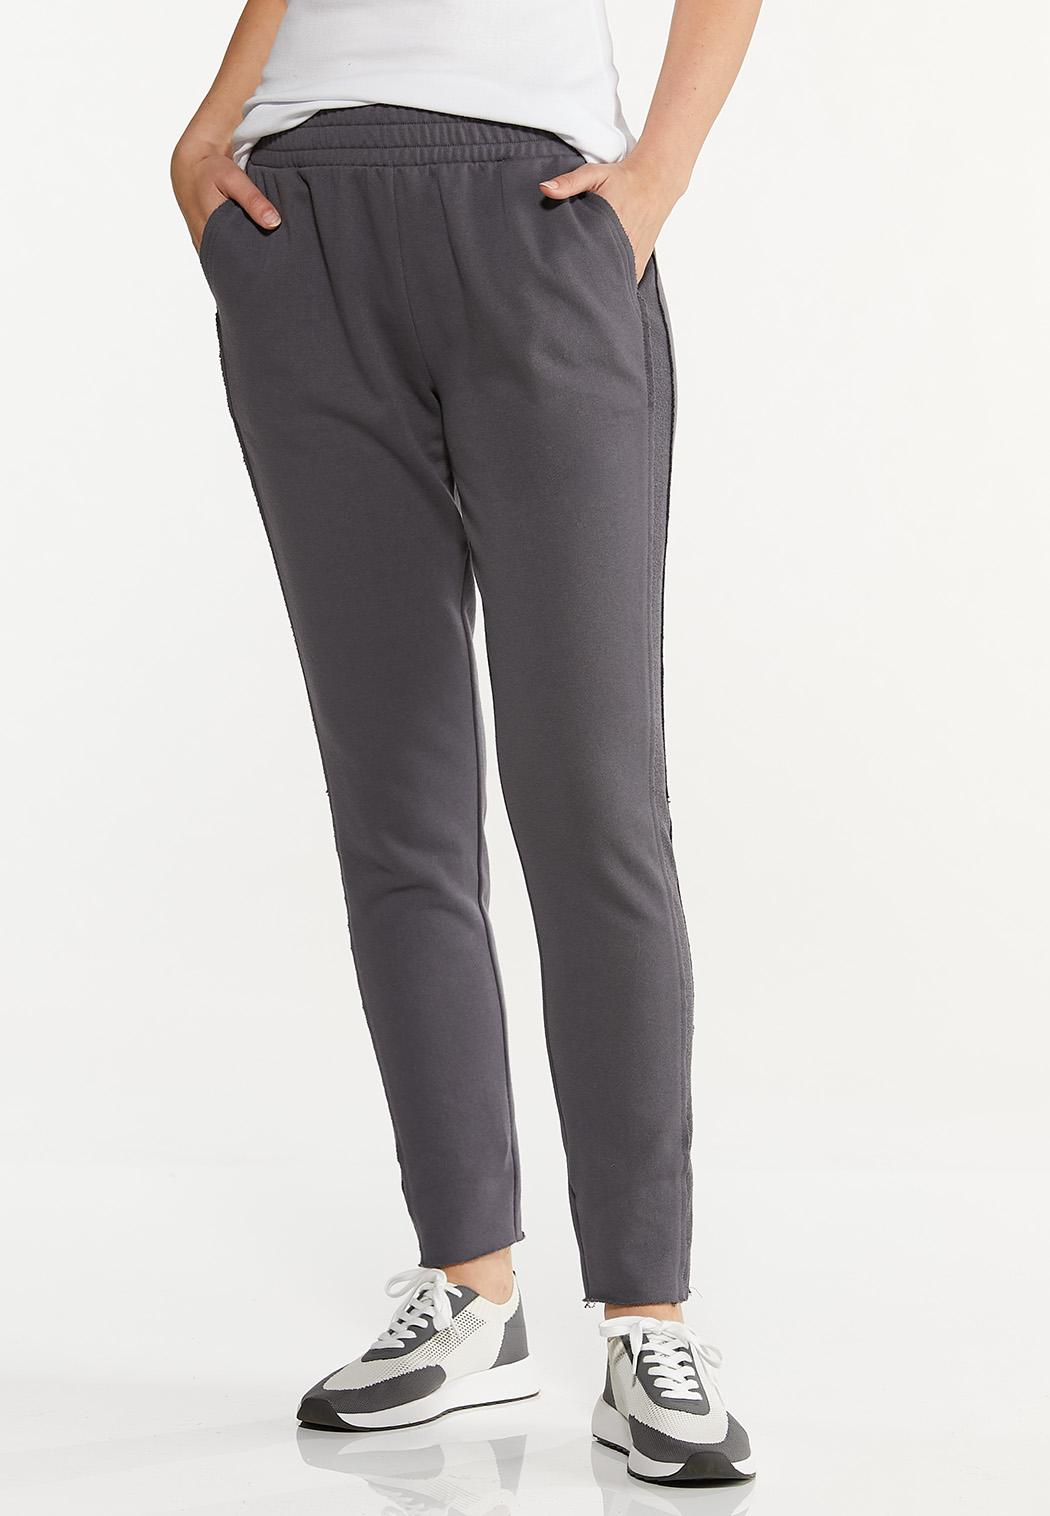 Petite Contrasting French Terry Pants